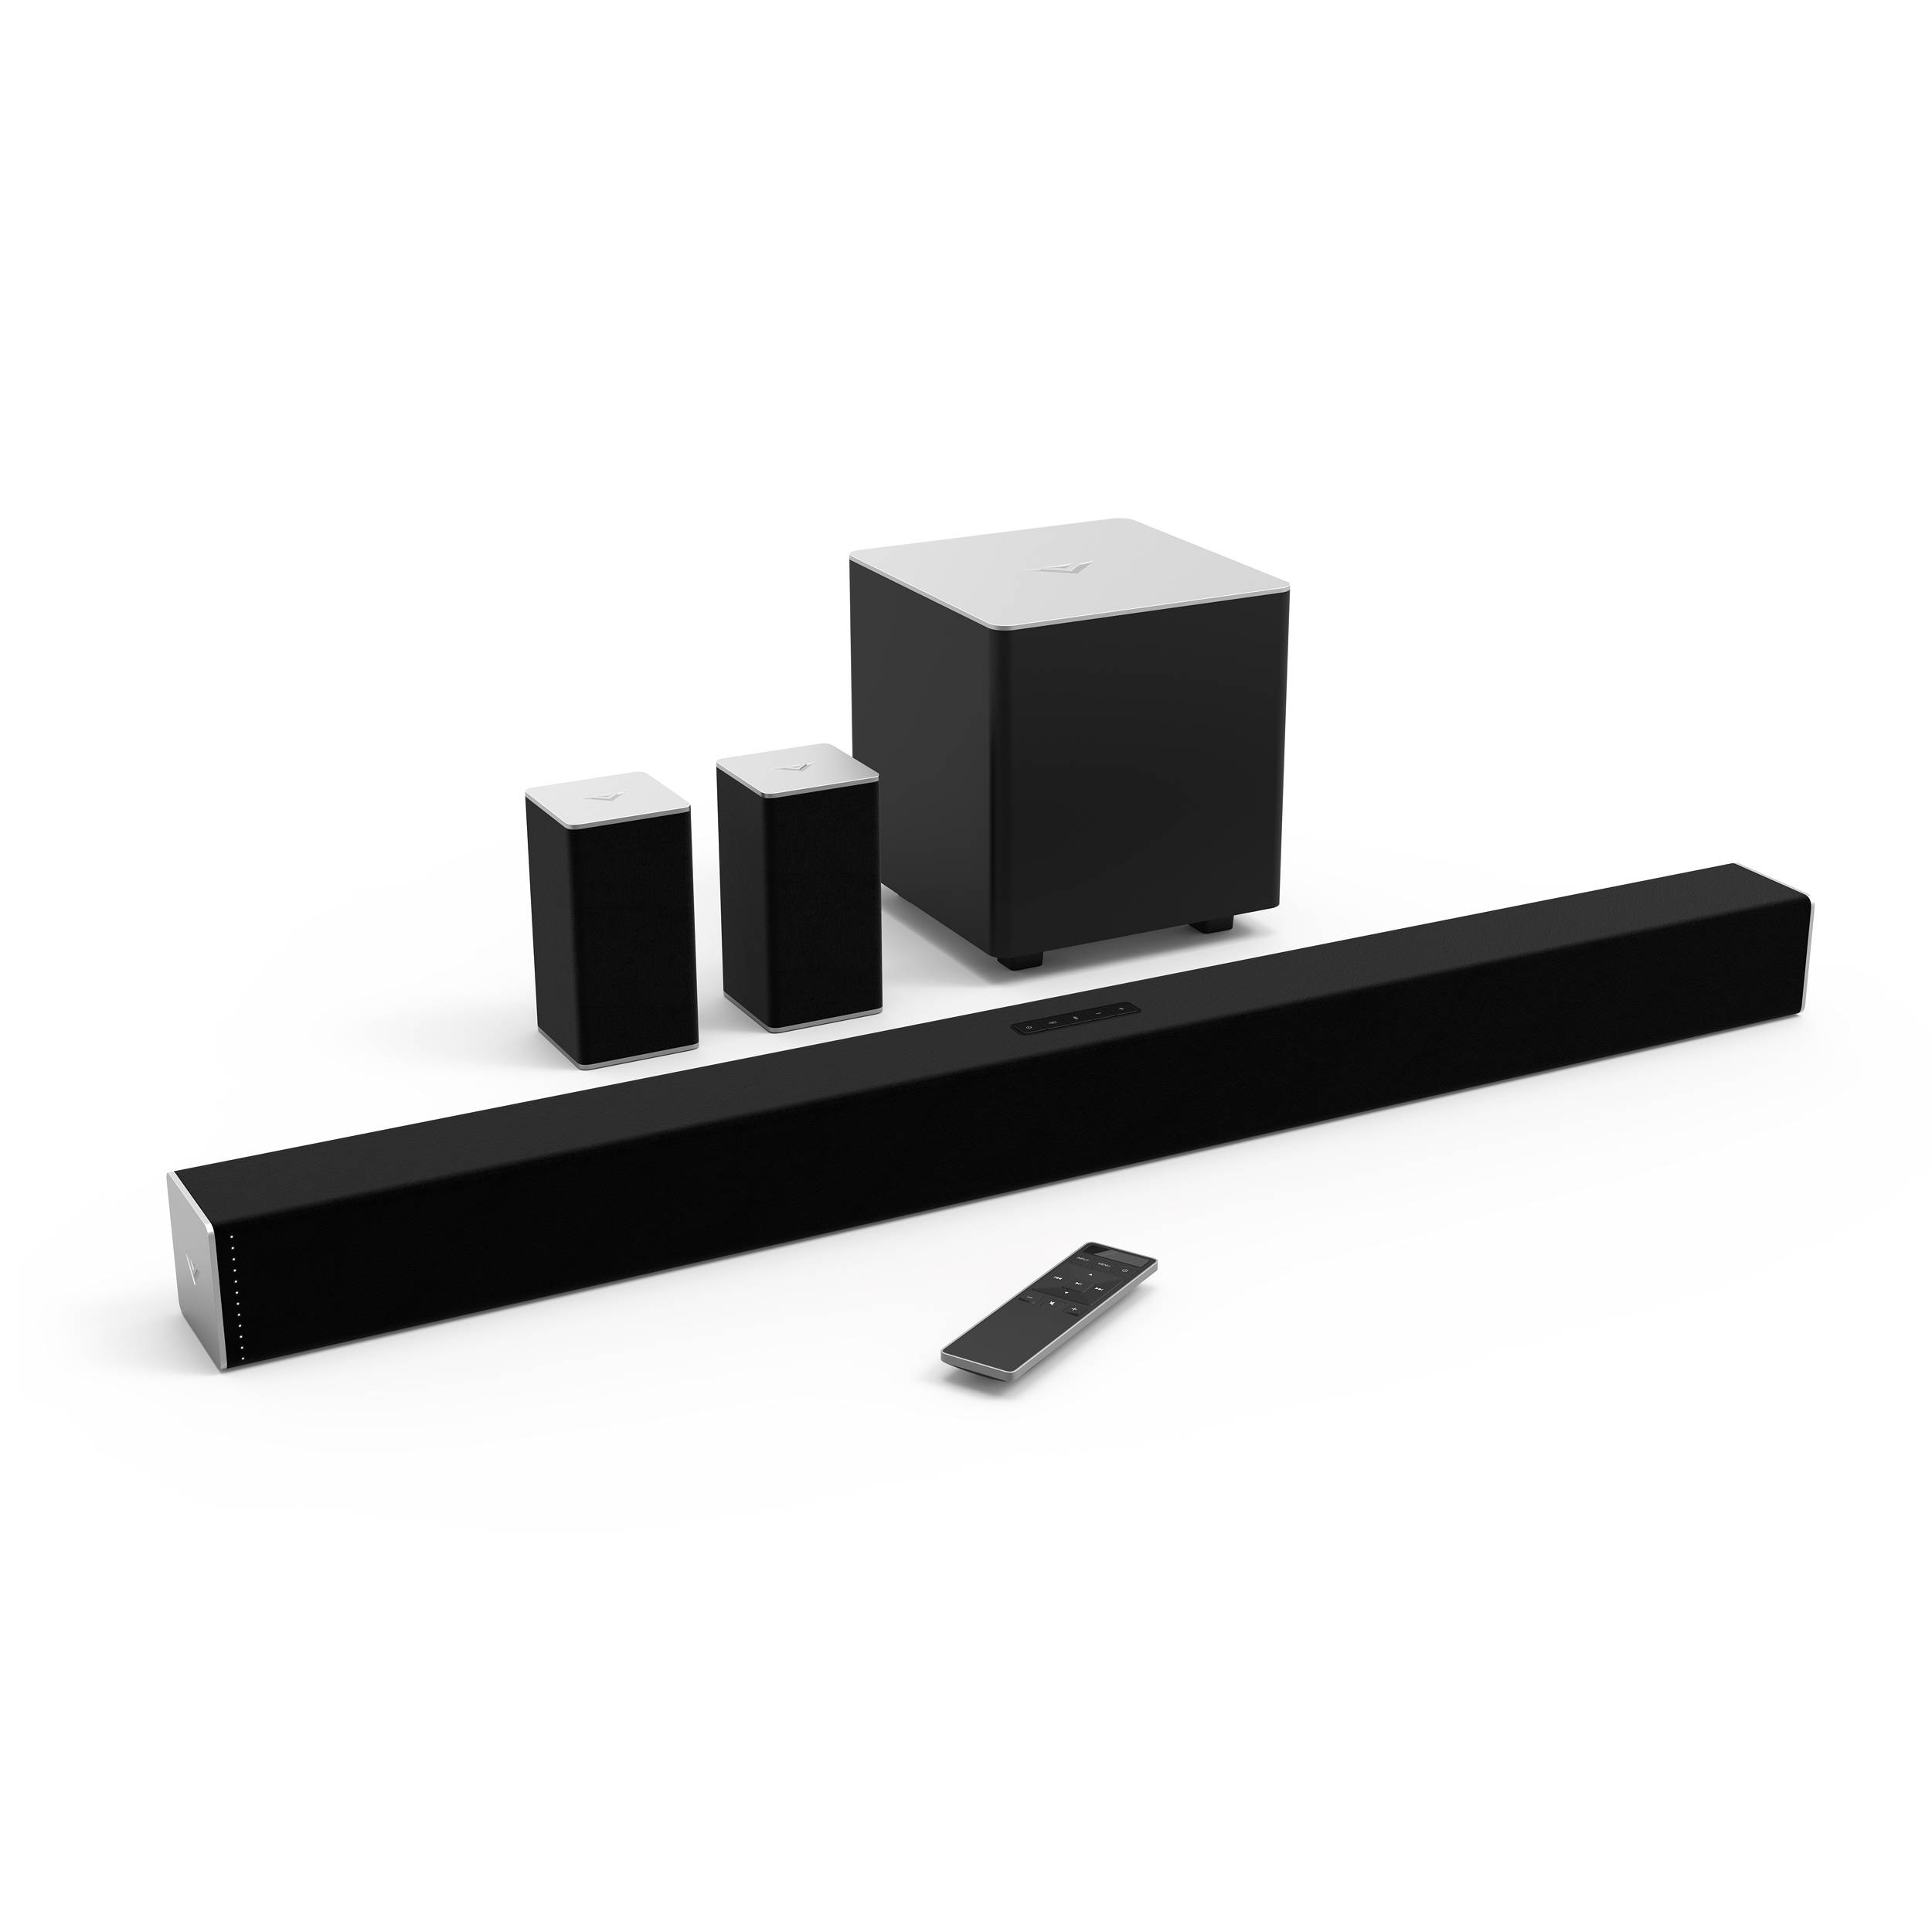 38 5.1 Channel Soundbar